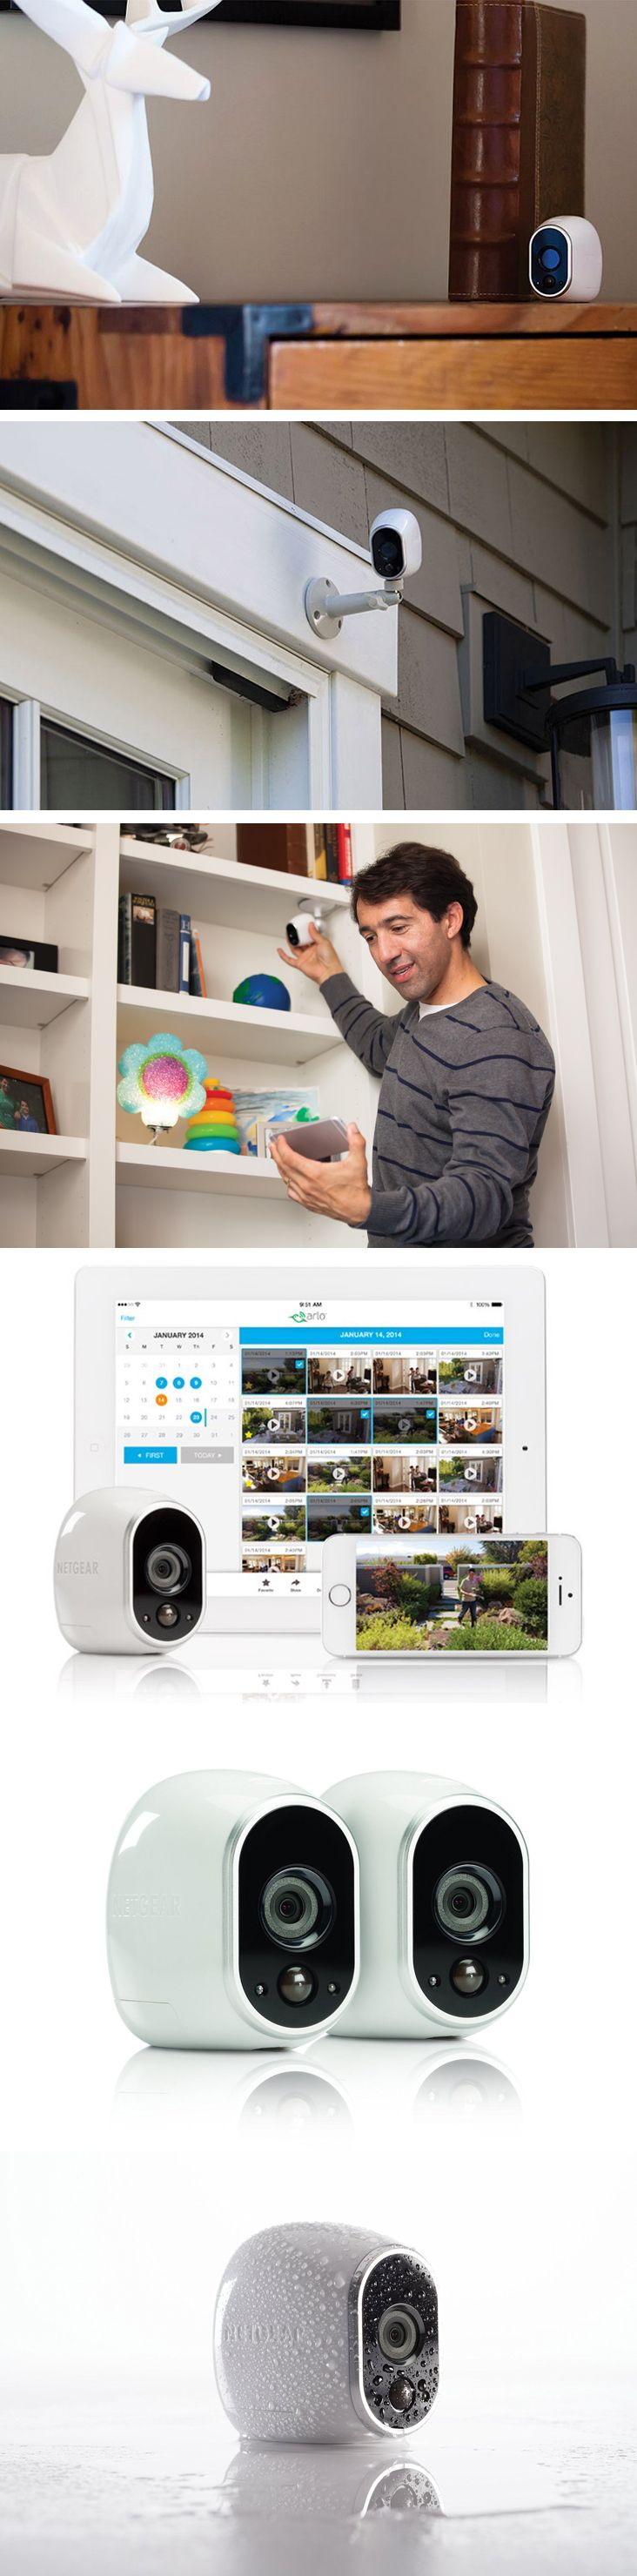 Wireless Security Cameras System: The only 100% wire-free, HD in daylight or darkness smart home security cameras! - www.MyWonderList.com